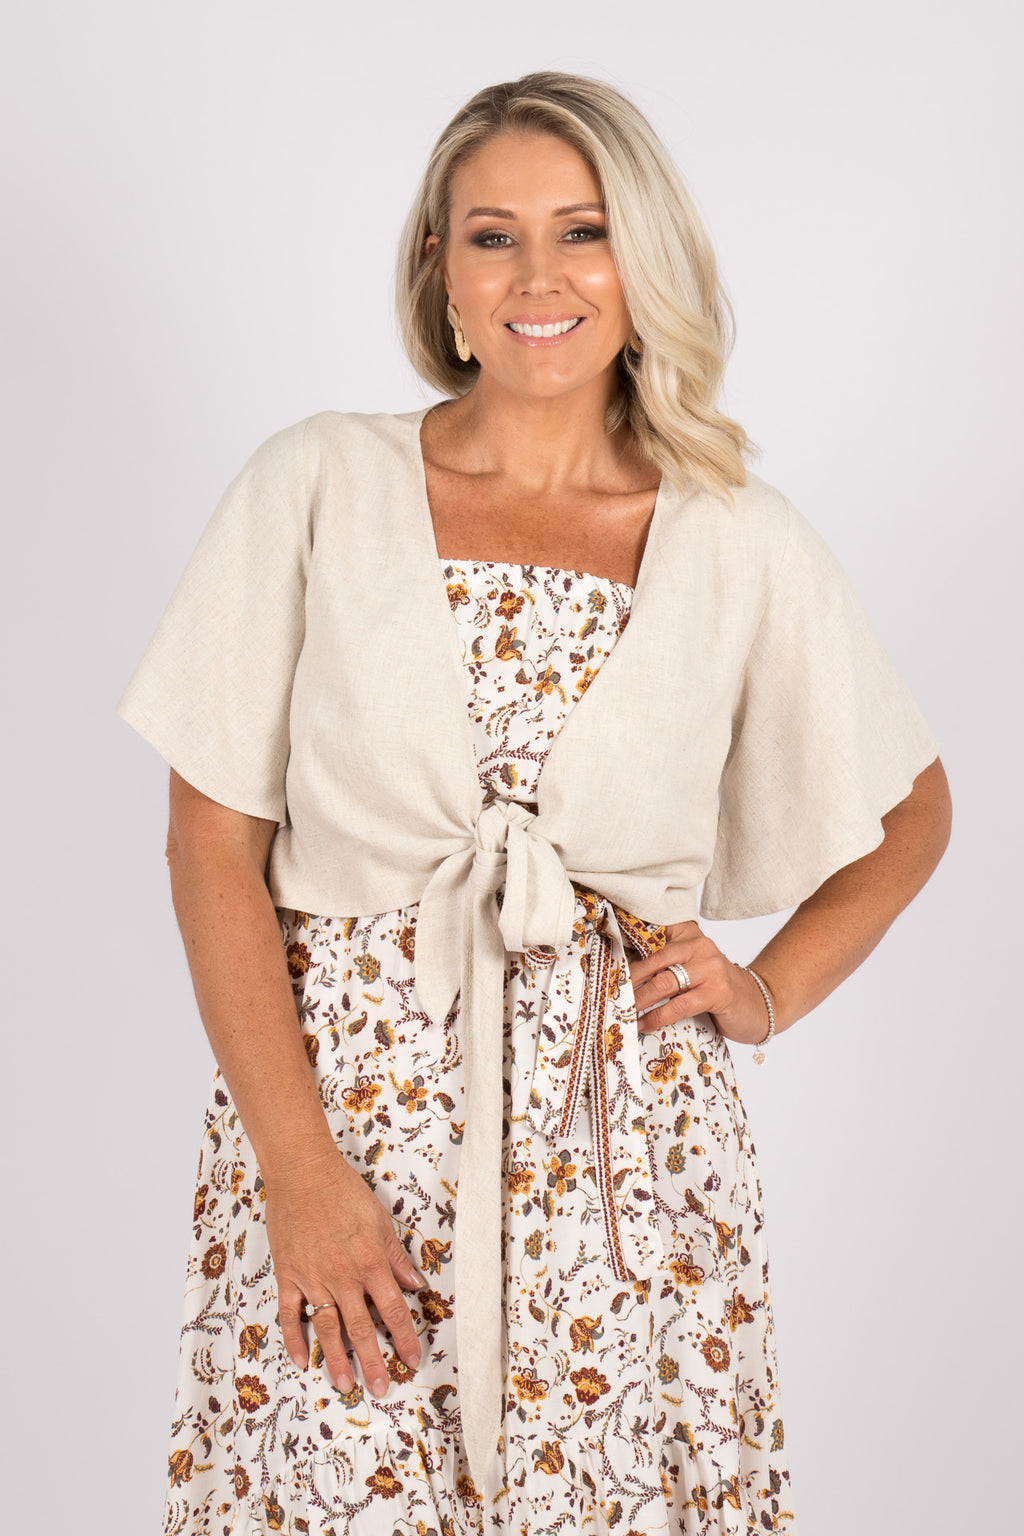 Anna Tie Top in Natural